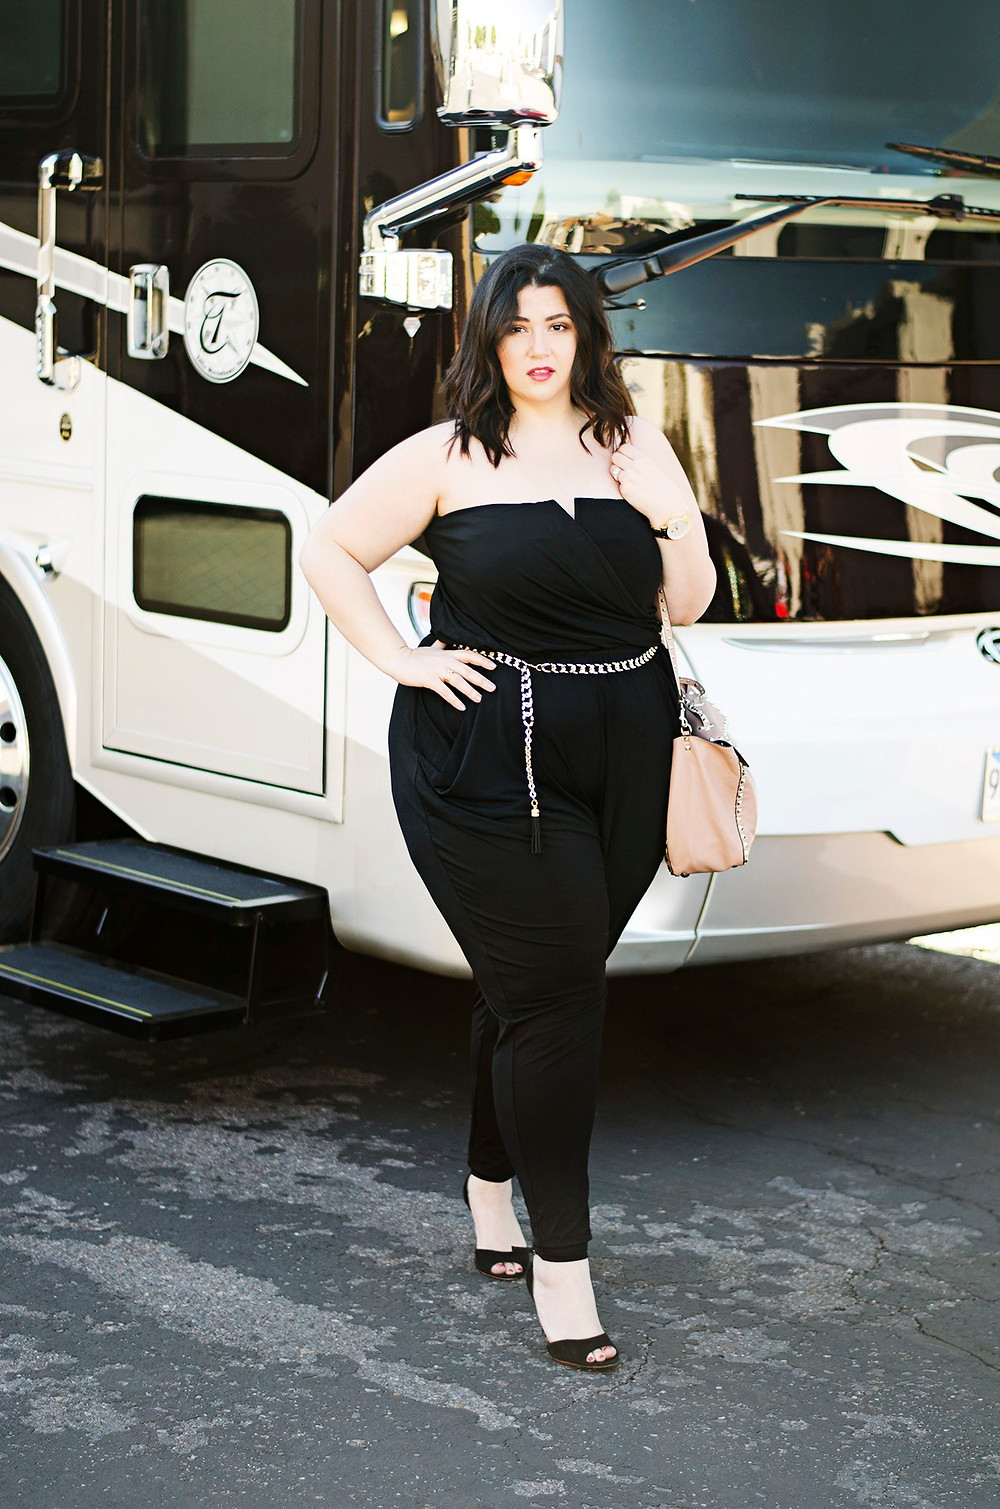 plus size travel jumpsuit nicole curves on a budget crystal sometimes glam blogger collab phoenix travel ootd city chic fashion to figure